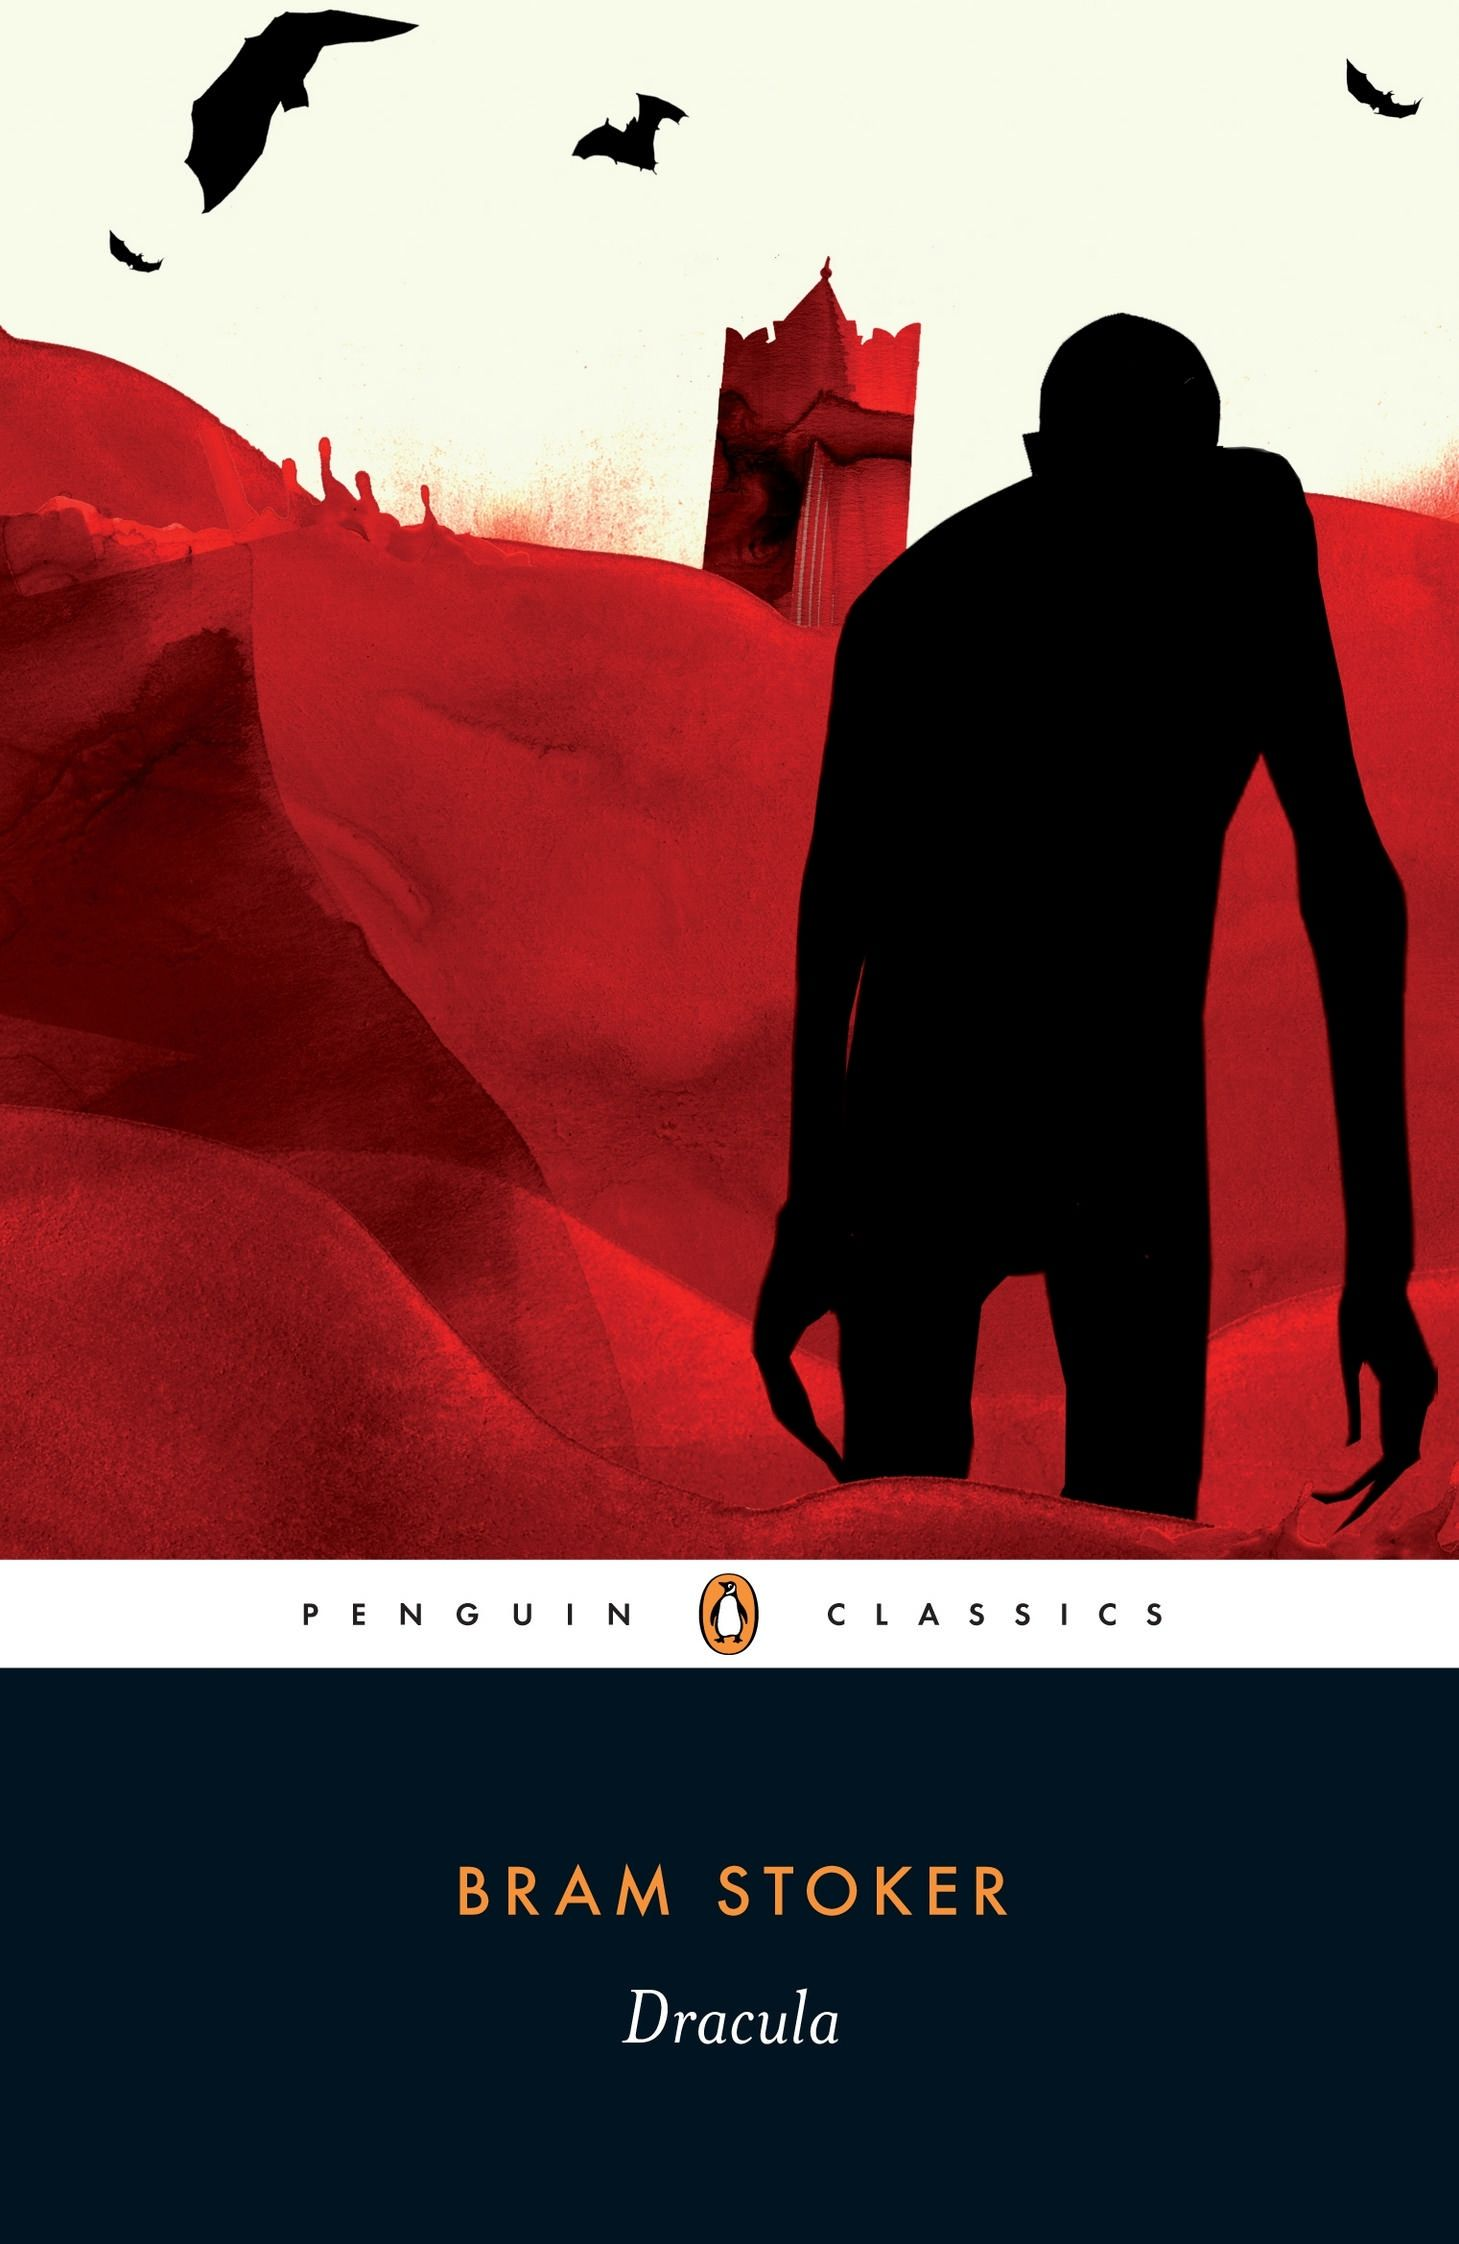 a novel analysis of dracula by bram stoker Written by bram stoker, narrated by download the app and start listening to dracula [audible edition] today - free accurate performance of stoker's novel.